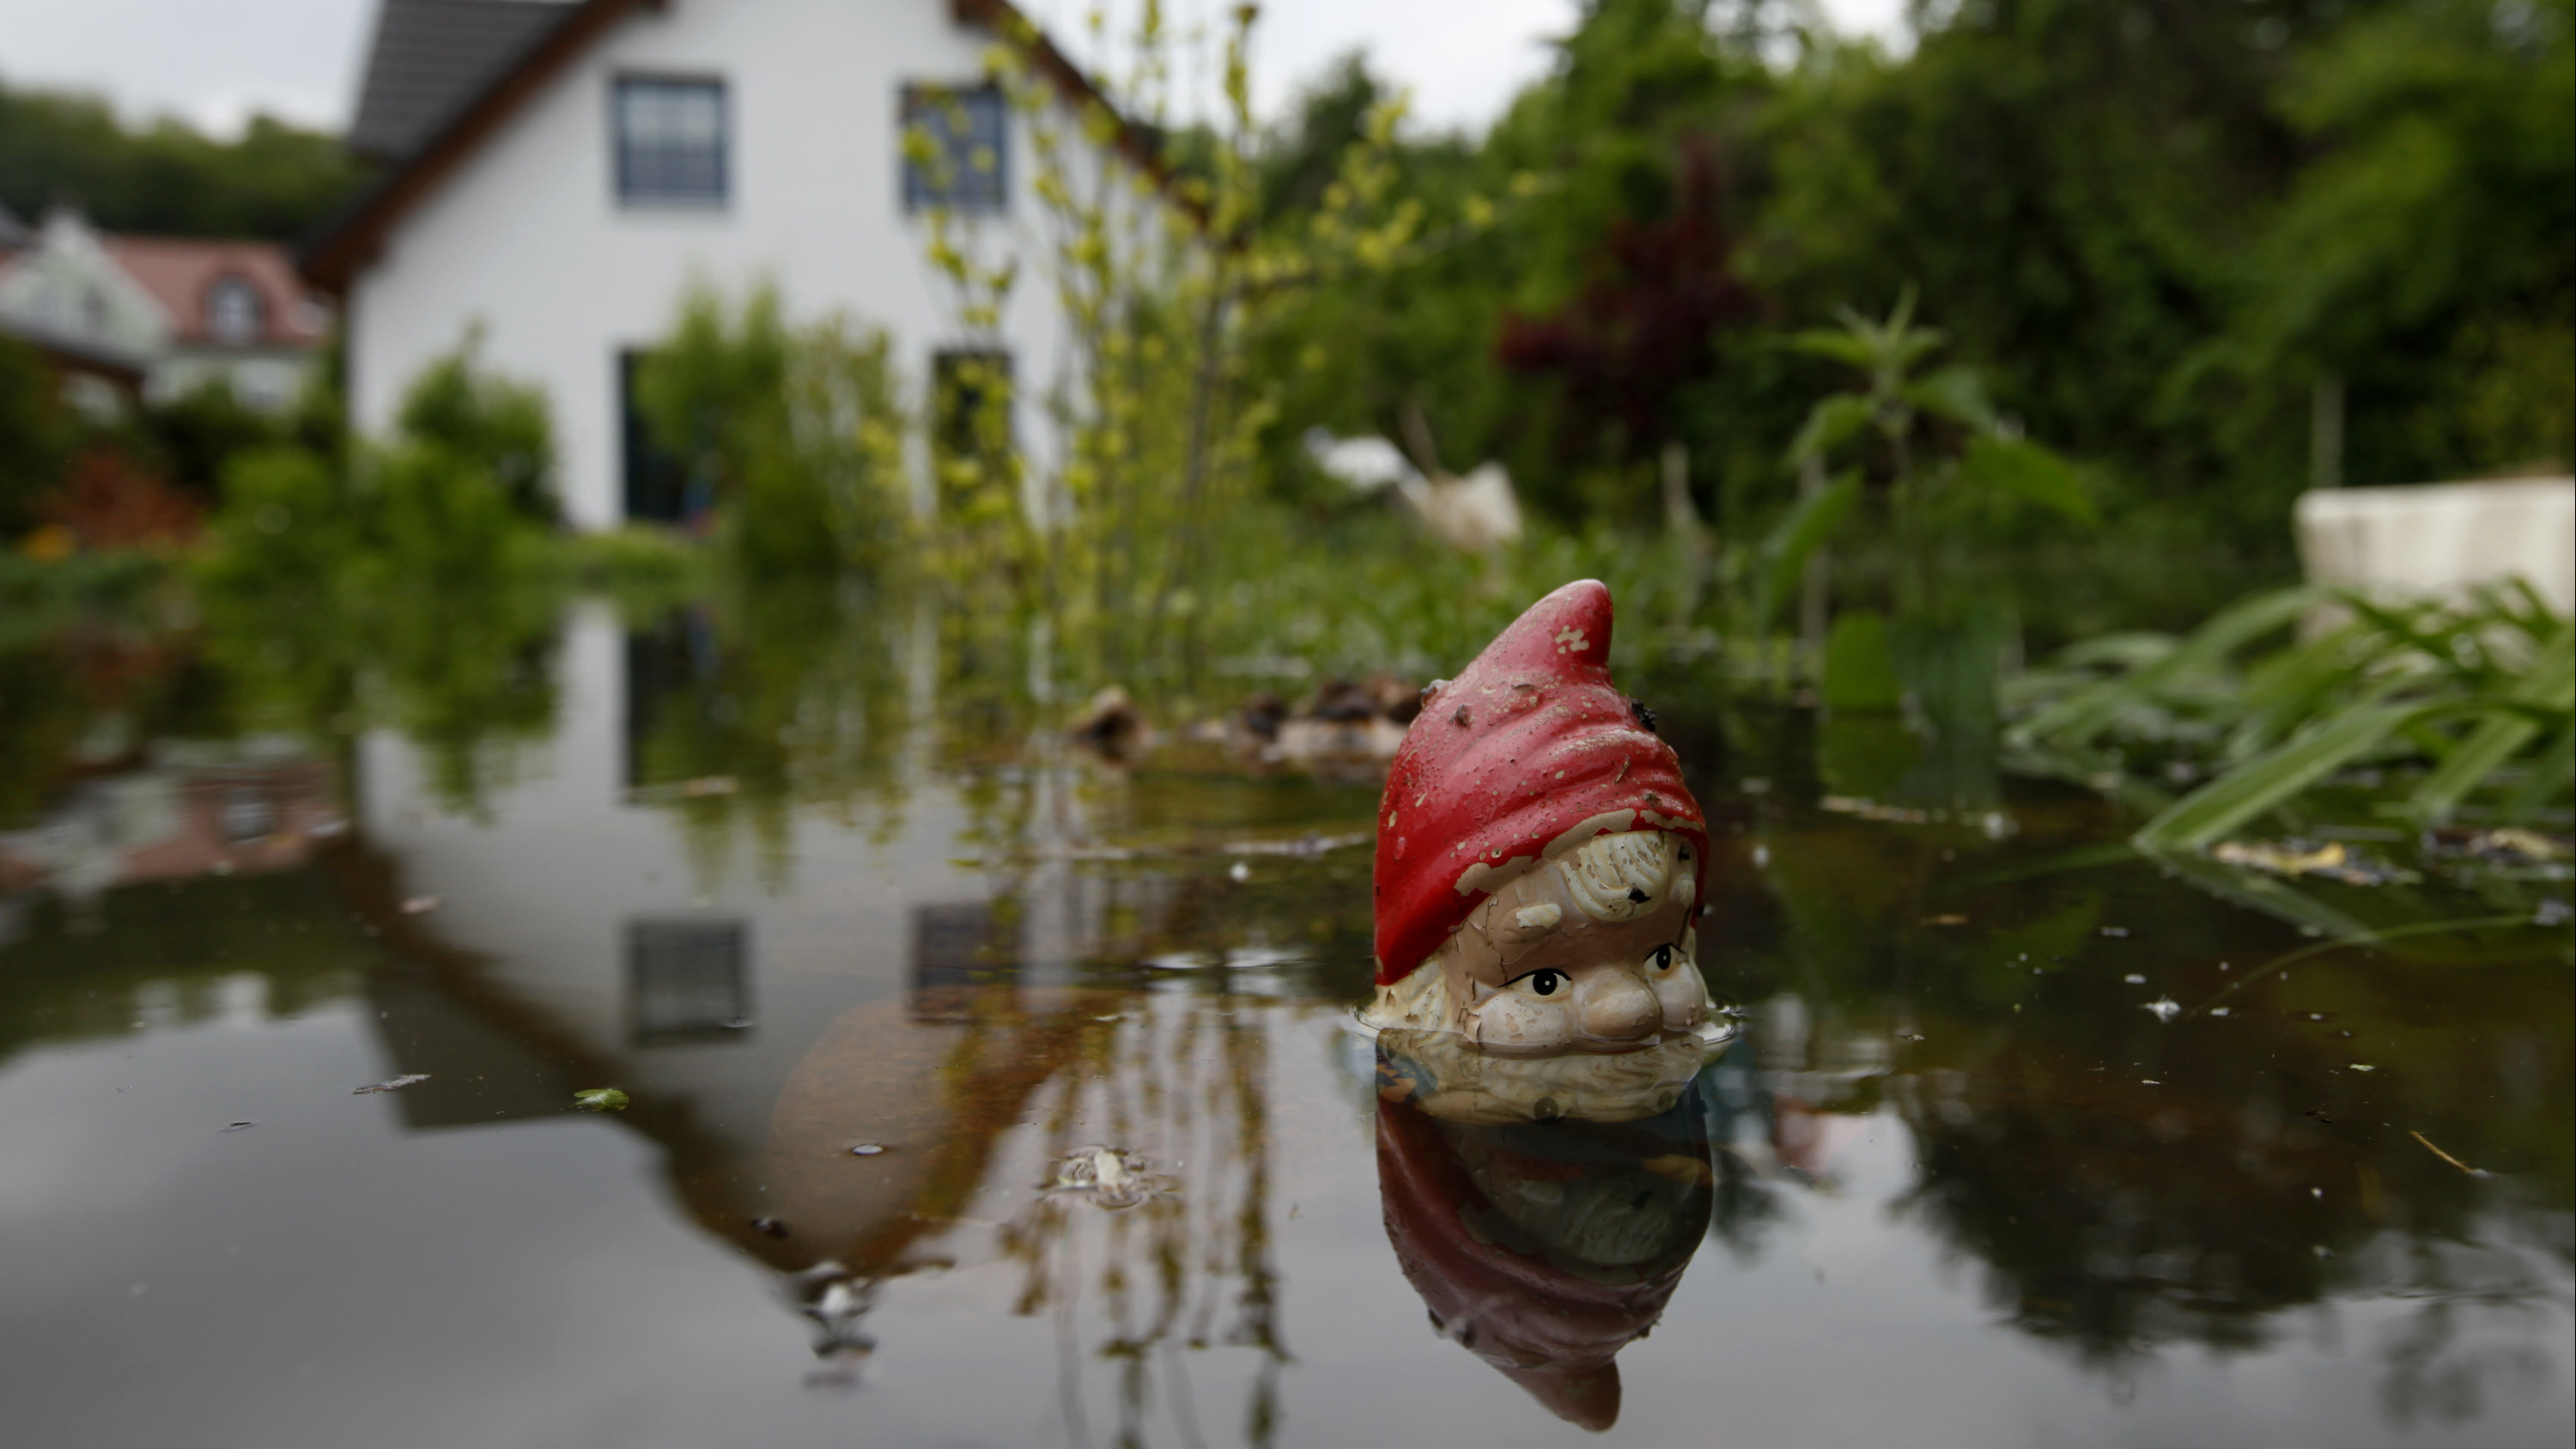 Water of the Oder river covers the garden of a house in Bushmuehlenweg in the city of Frankfurt/Oder near the Polish border,  May 28, 2010.  REUTERS/Thomas Peter  (GERMANY - Tags: DISASTER ENVIRONMENT) - GM1E65S1LJ901